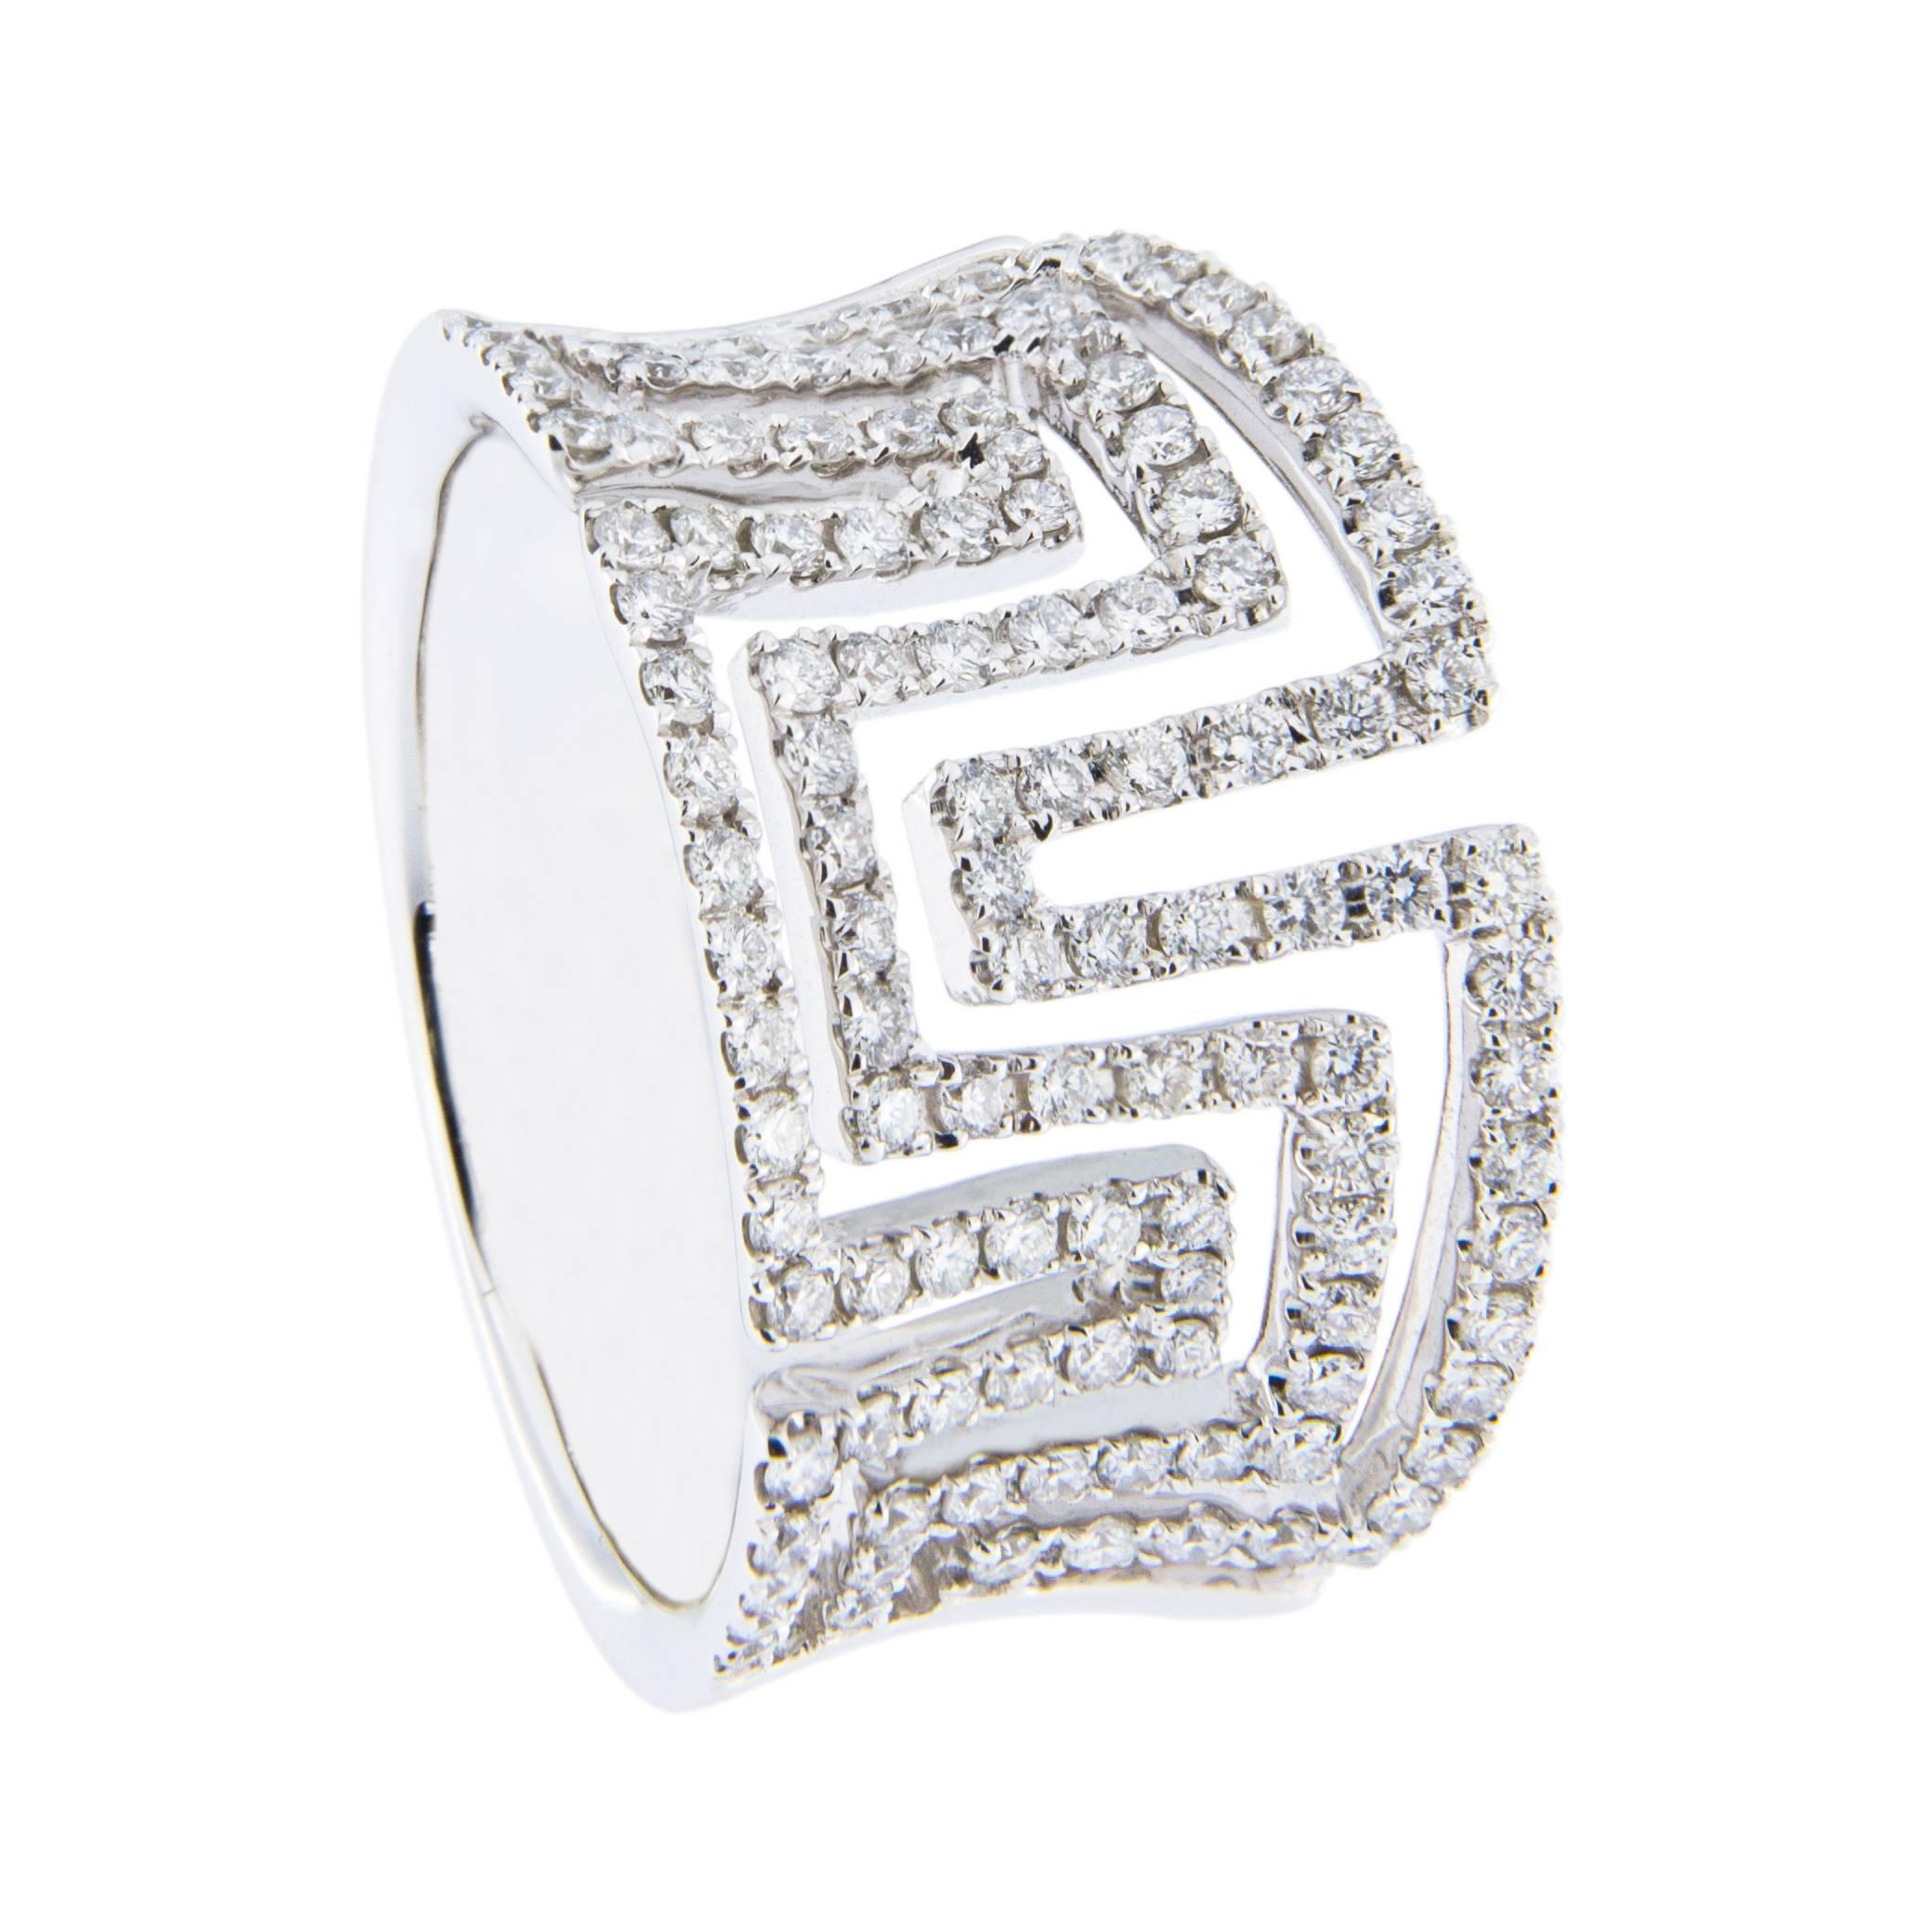 diamond engagement collections shop greek diamonds uk rings online